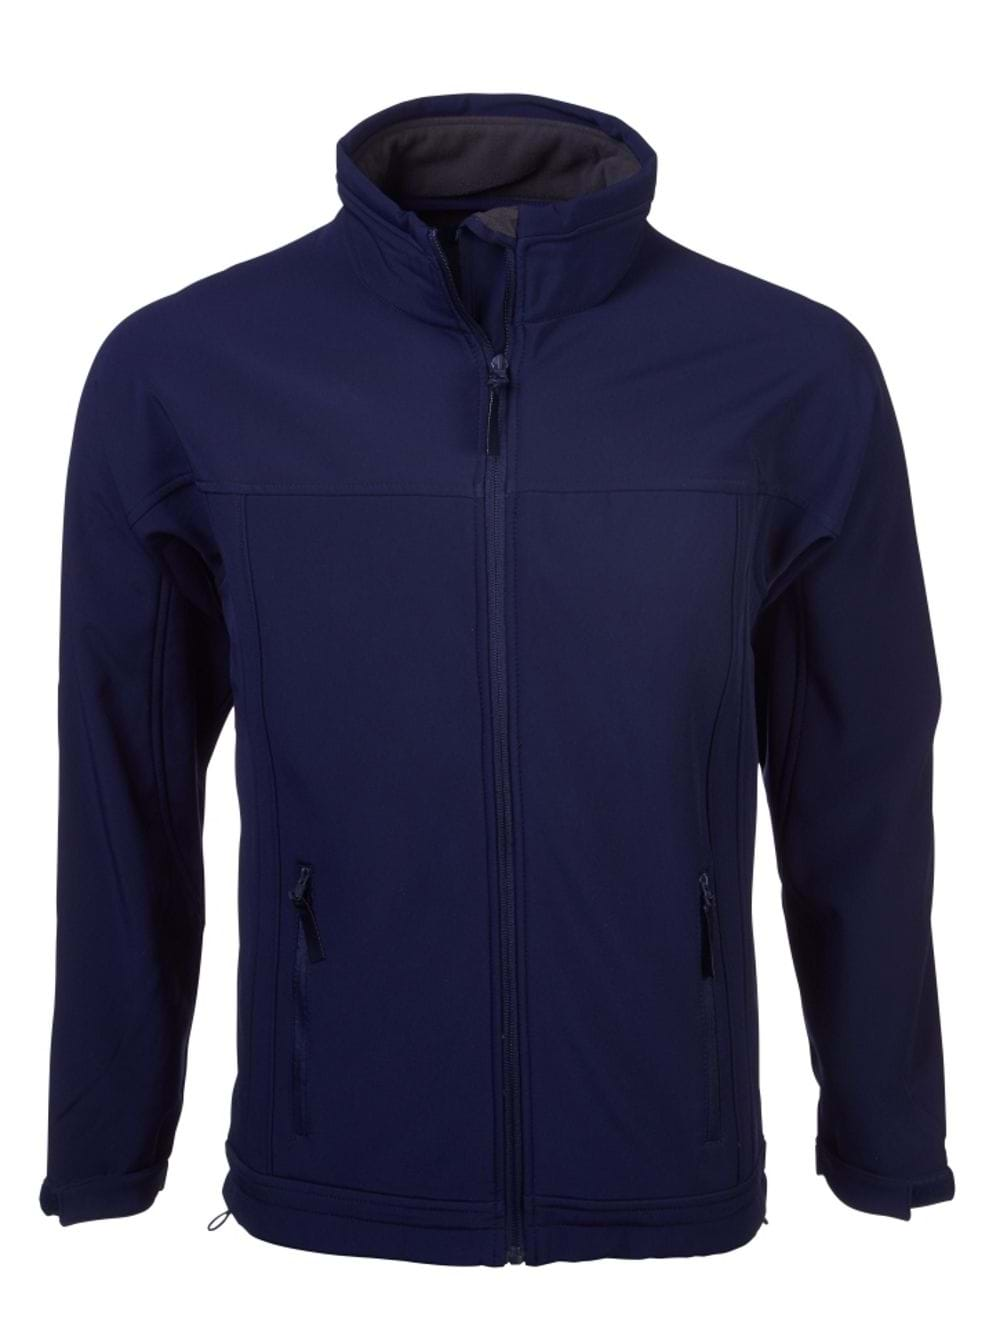 Unisex Summit Jacket - Navy/Charcoal